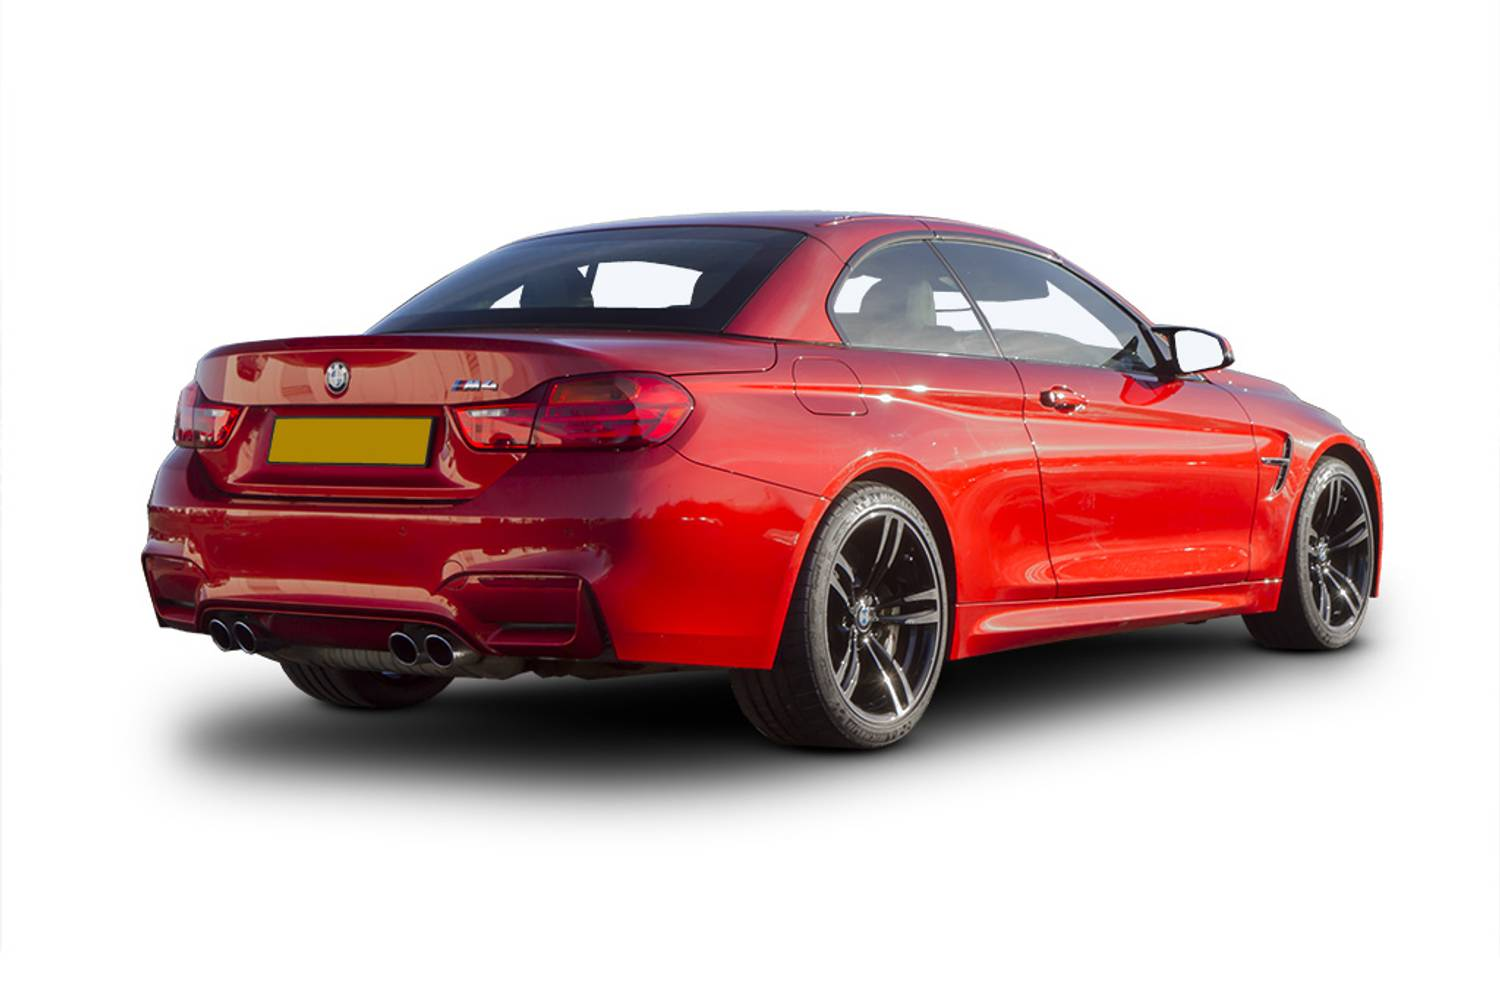 new bmw m4 convertible m4 2 door dct competition pack 2016 for sale. Black Bedroom Furniture Sets. Home Design Ideas